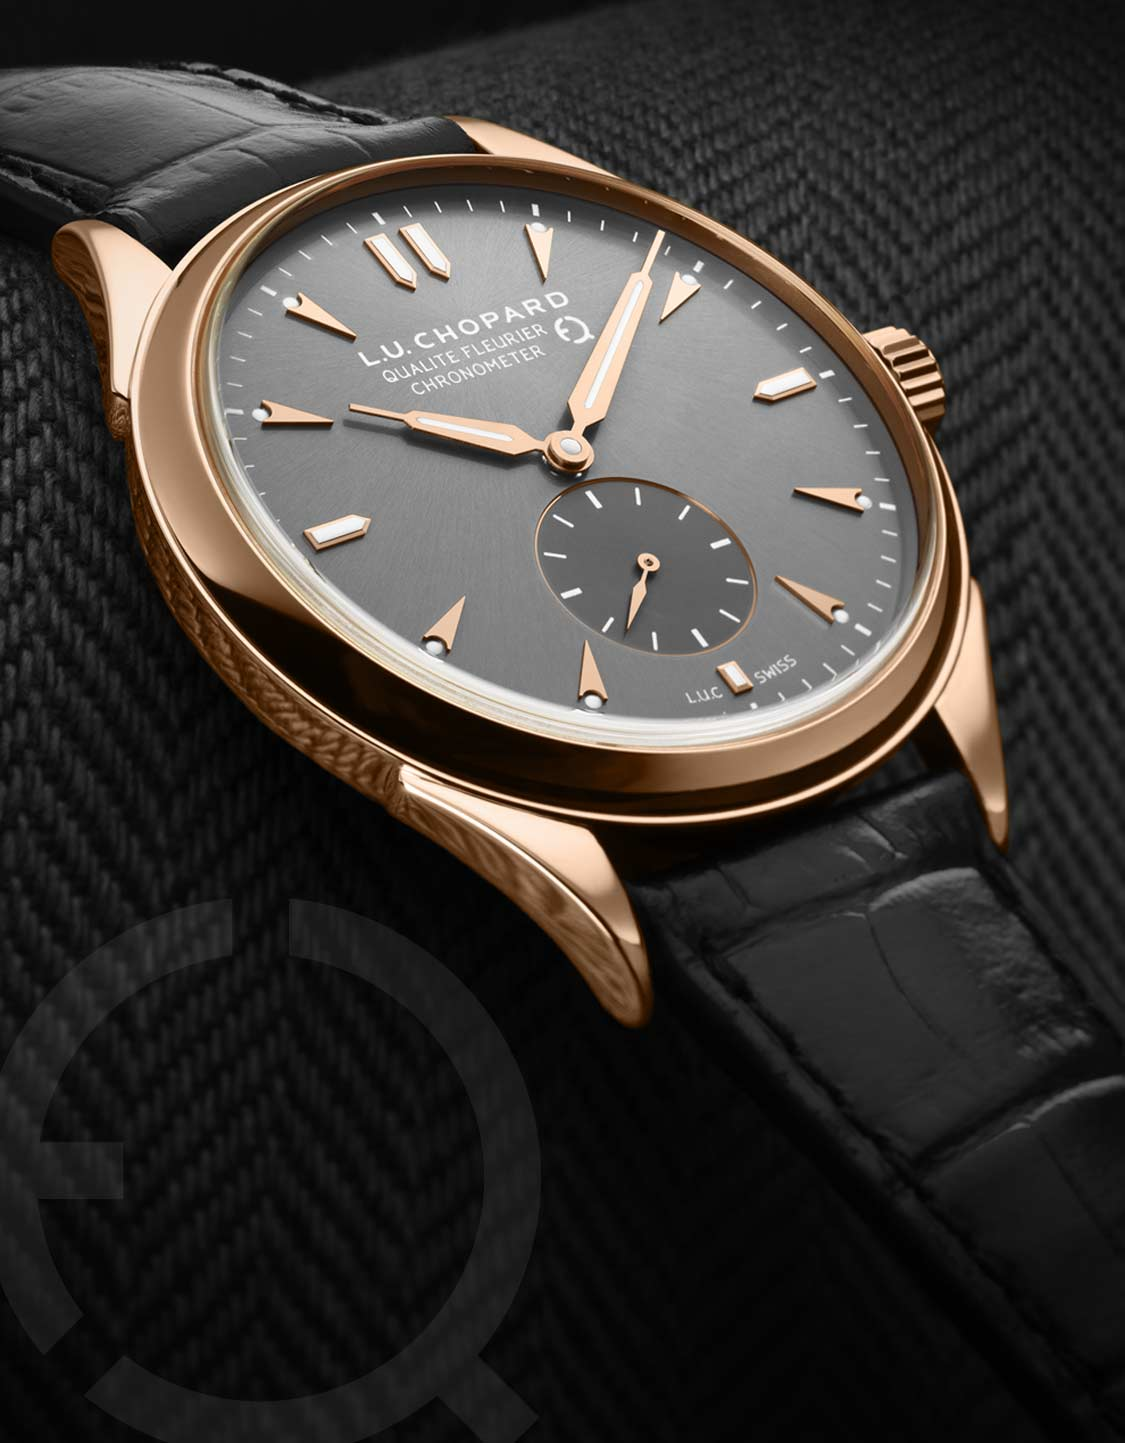 Close-up on the LUC Qualité Fleurier watch in rose gold with black dial and bracelet.